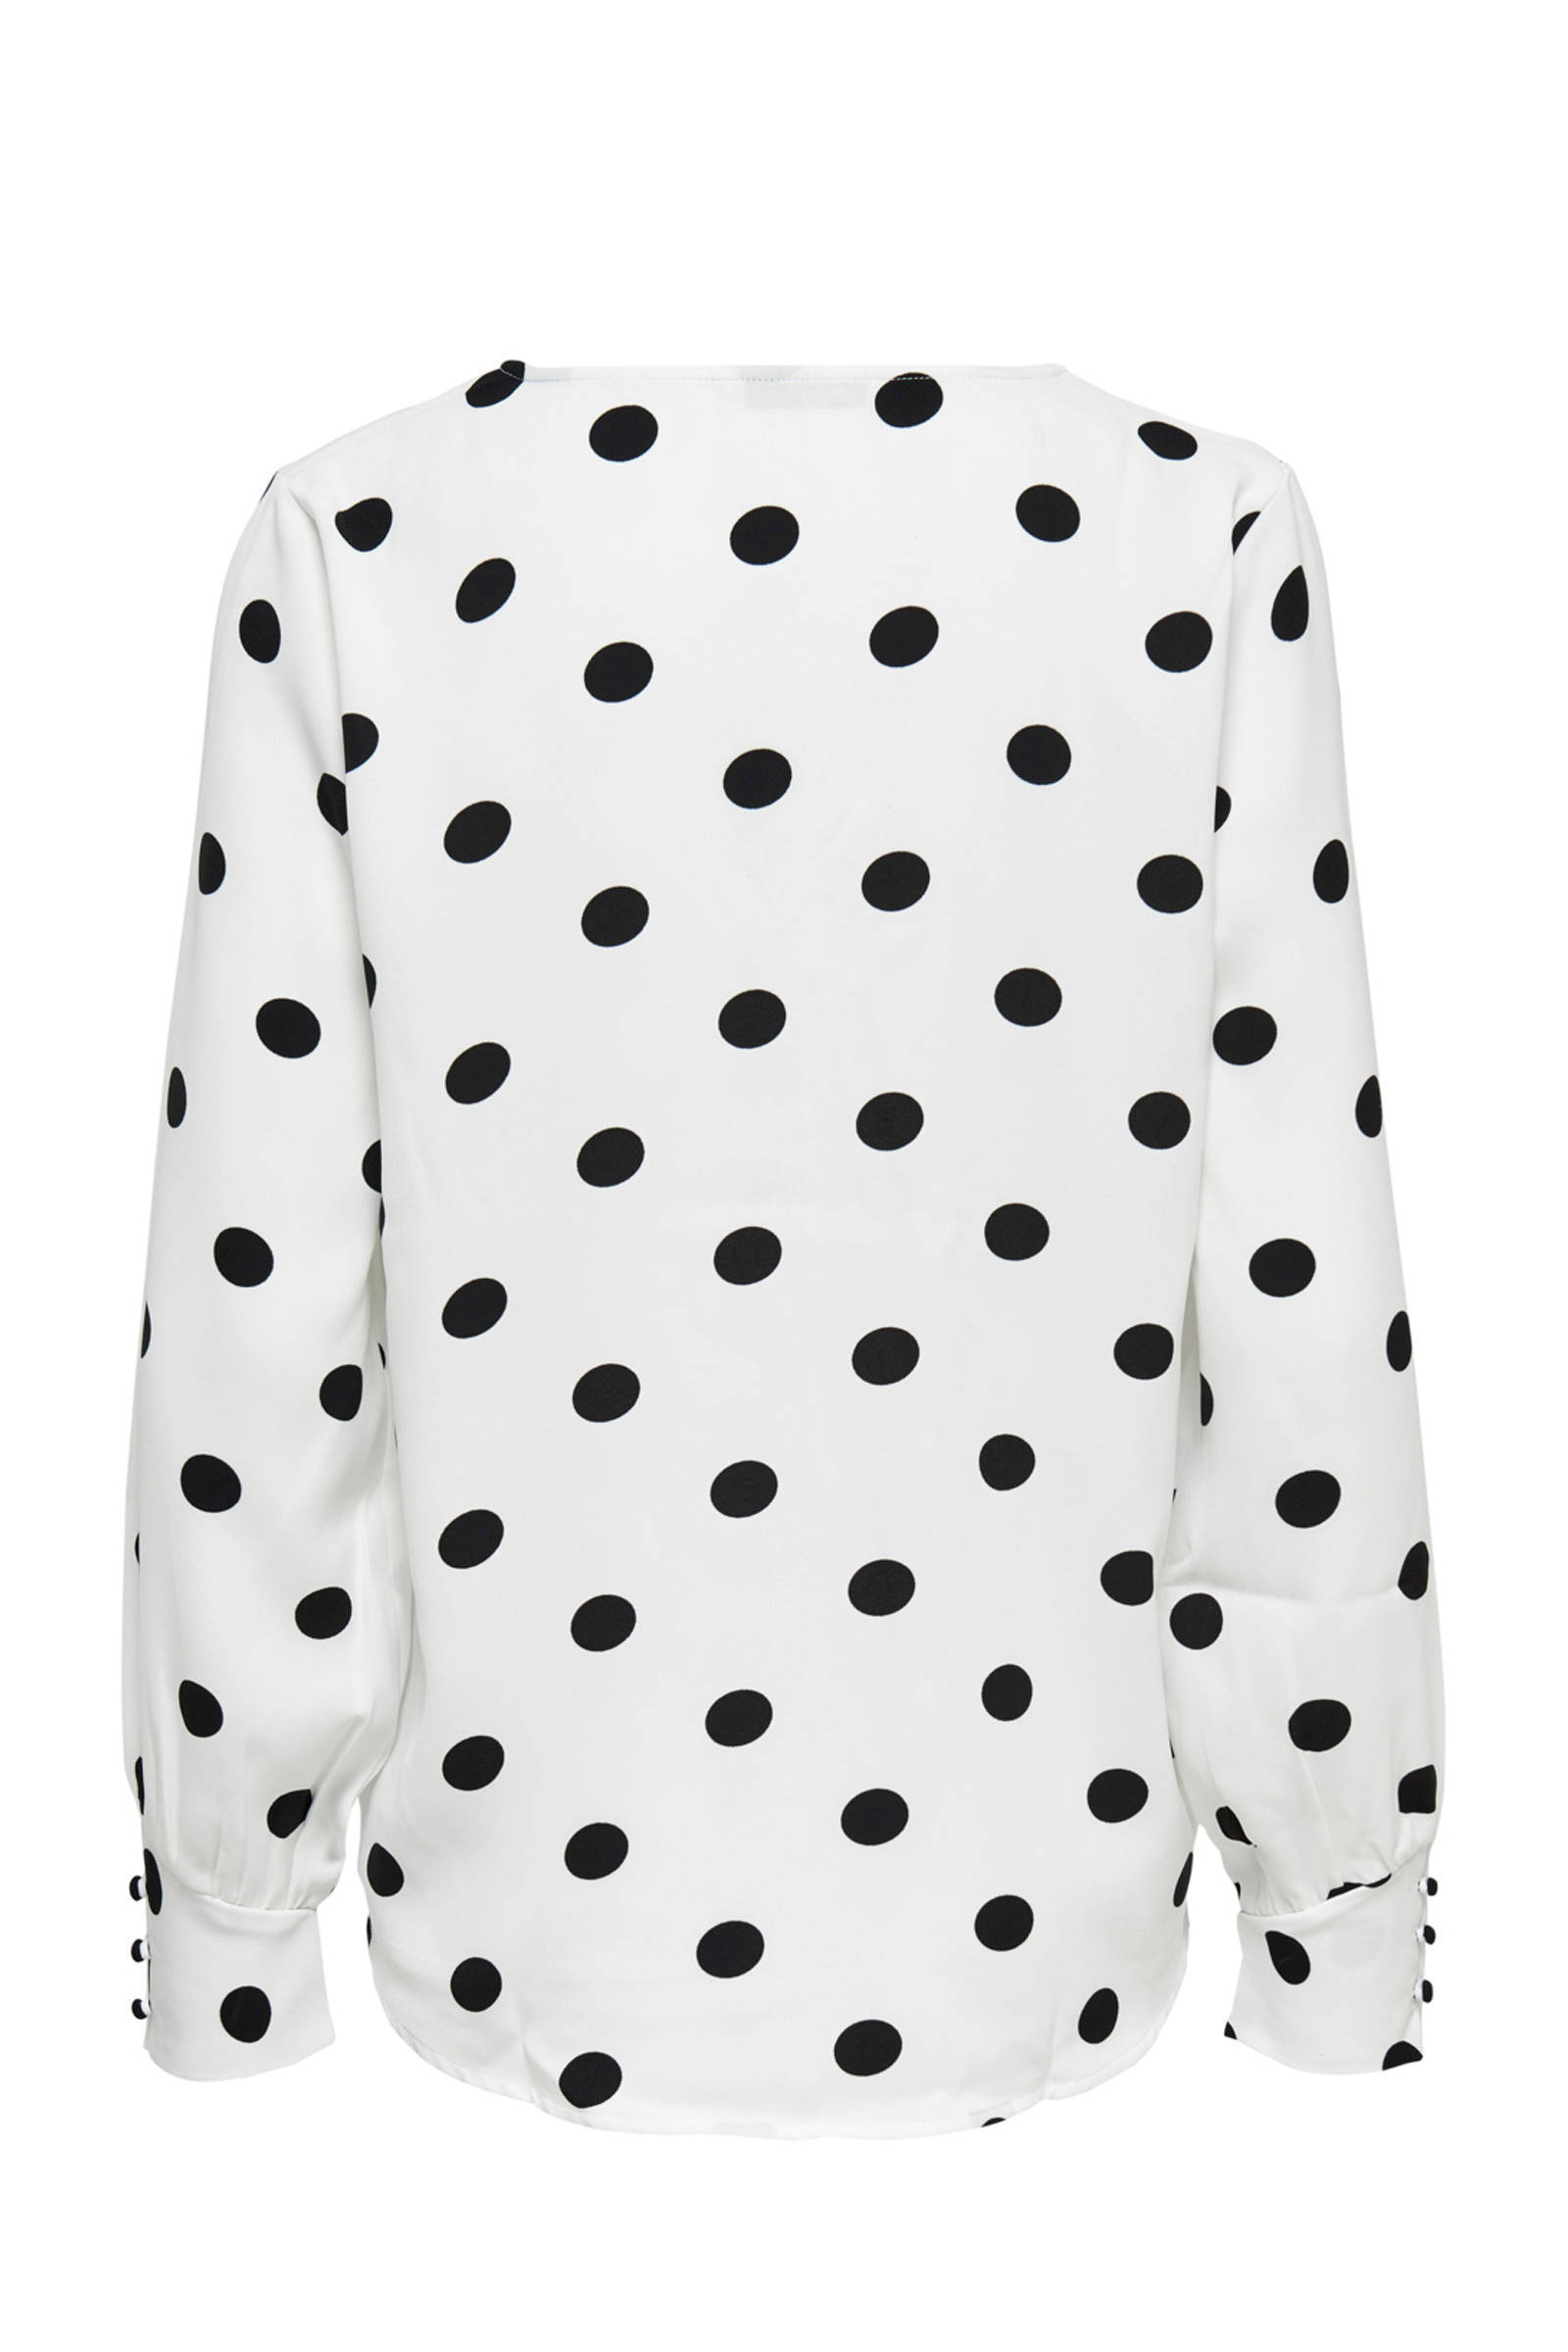 stippen met blouse ONLY met ONLY blouse stippen ONLY Fw1aqx5